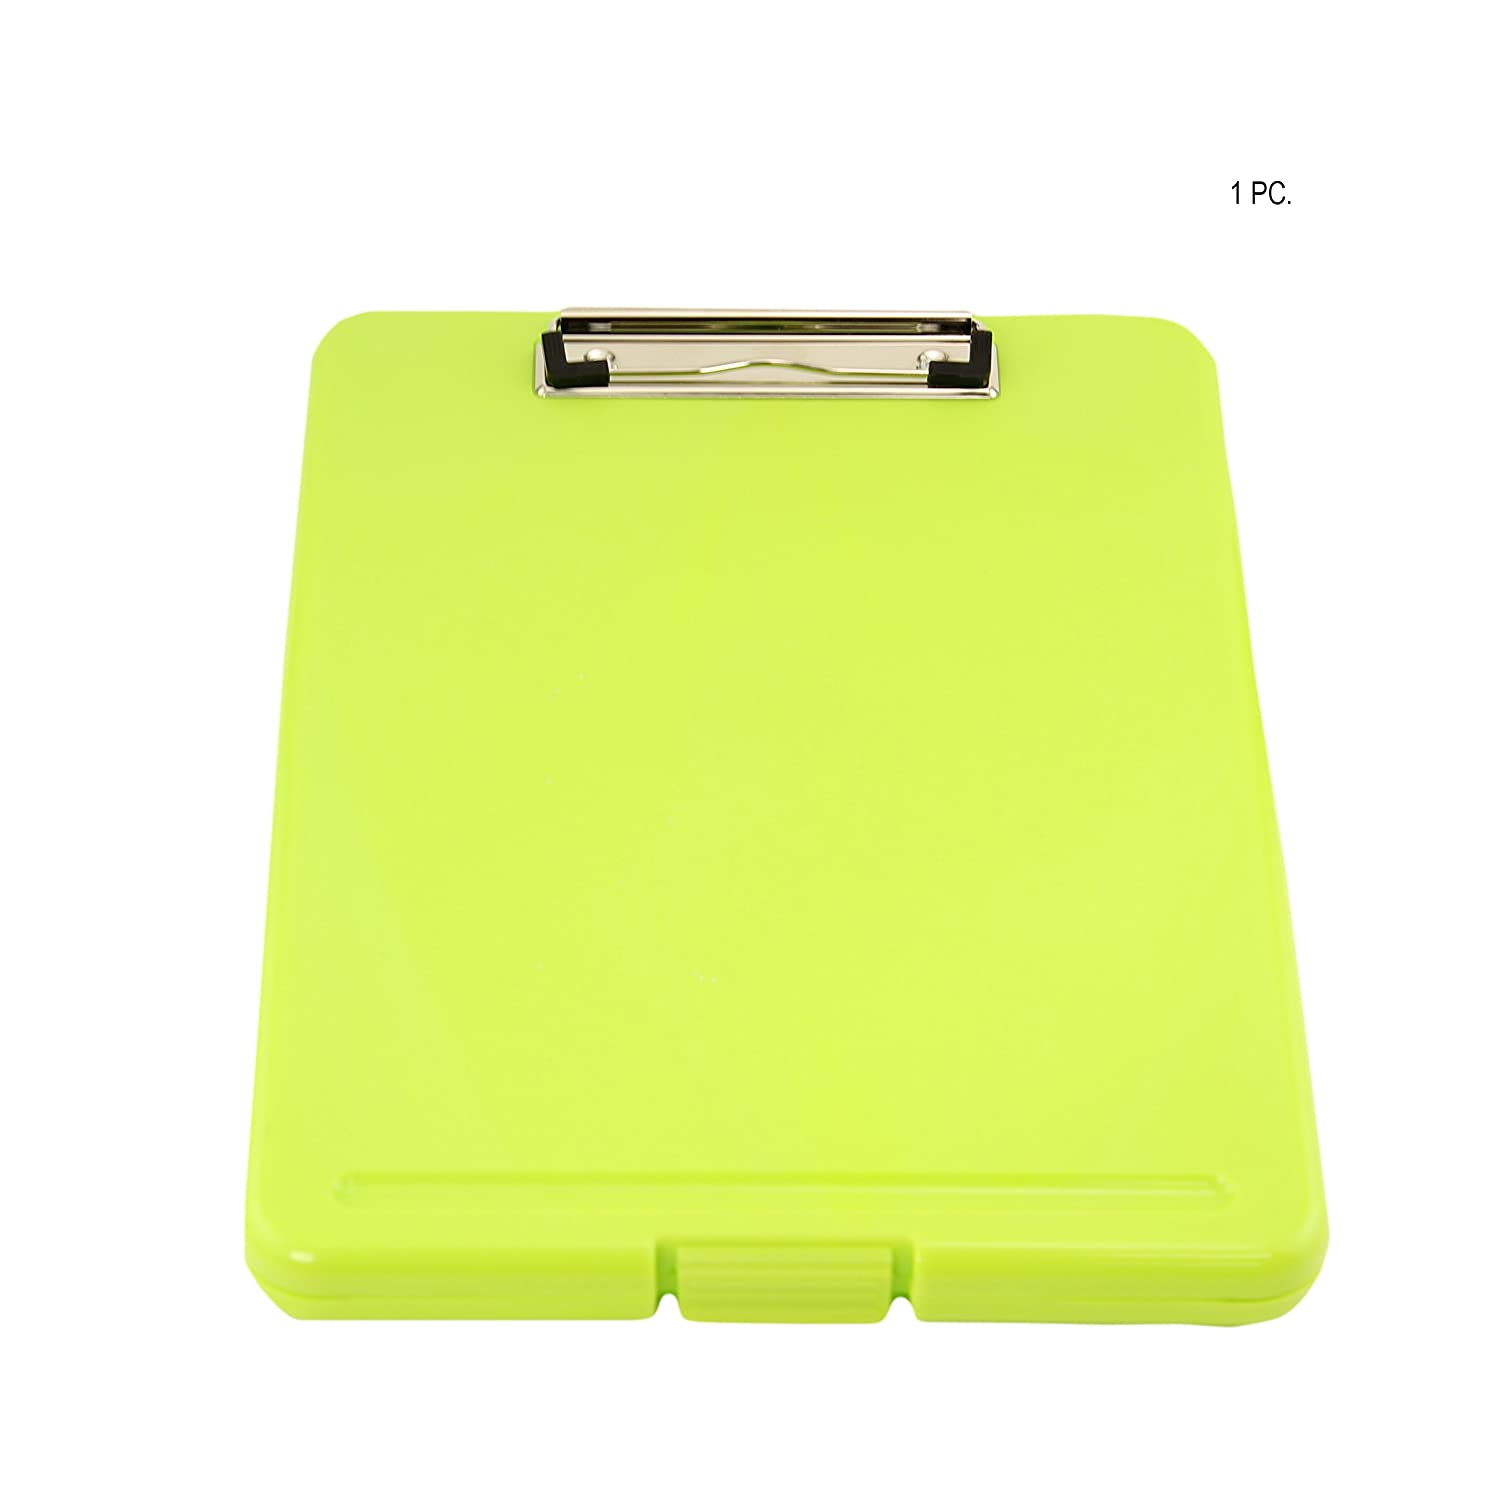 Adorox Set of 3 Legal Size Slim-case Storage Clipboard Teal Pink Neon Green Plastic Storage Clipboard for Students, Teachers, Sales, Utility, Industrial, Office Professional (Multicolored)